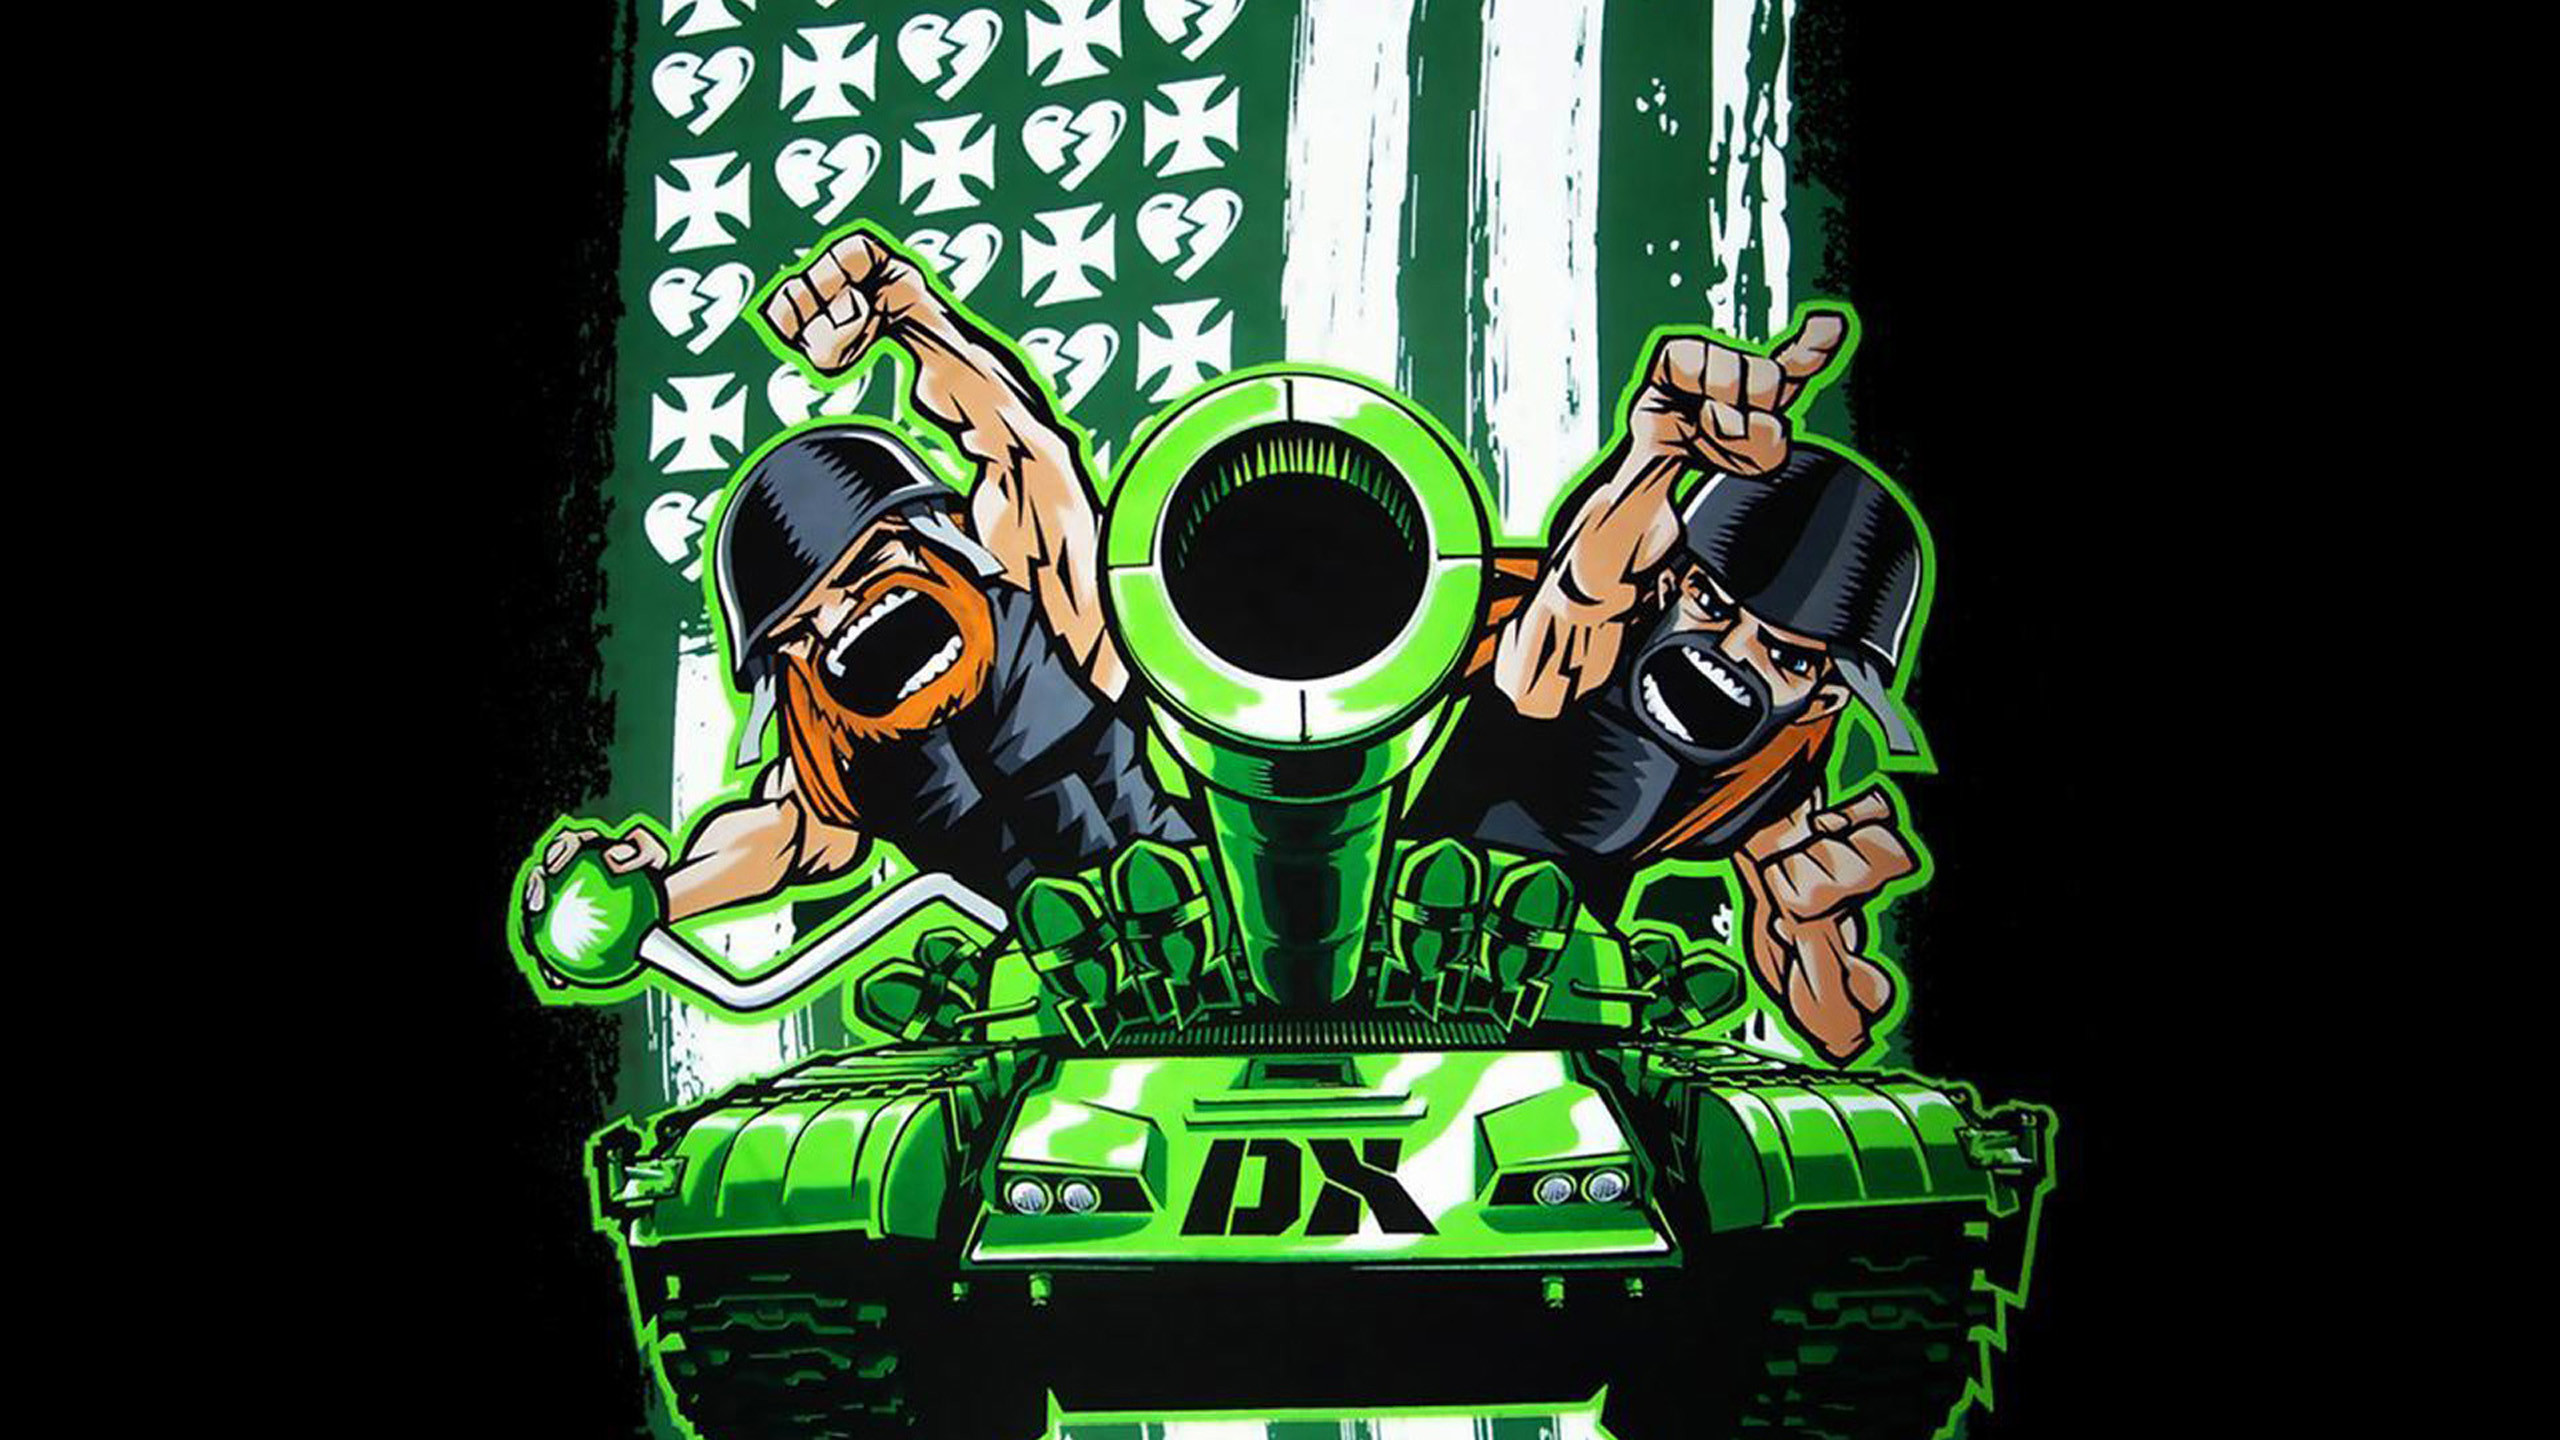 Wwe dx wallpapers 69 images - Dx images download ...